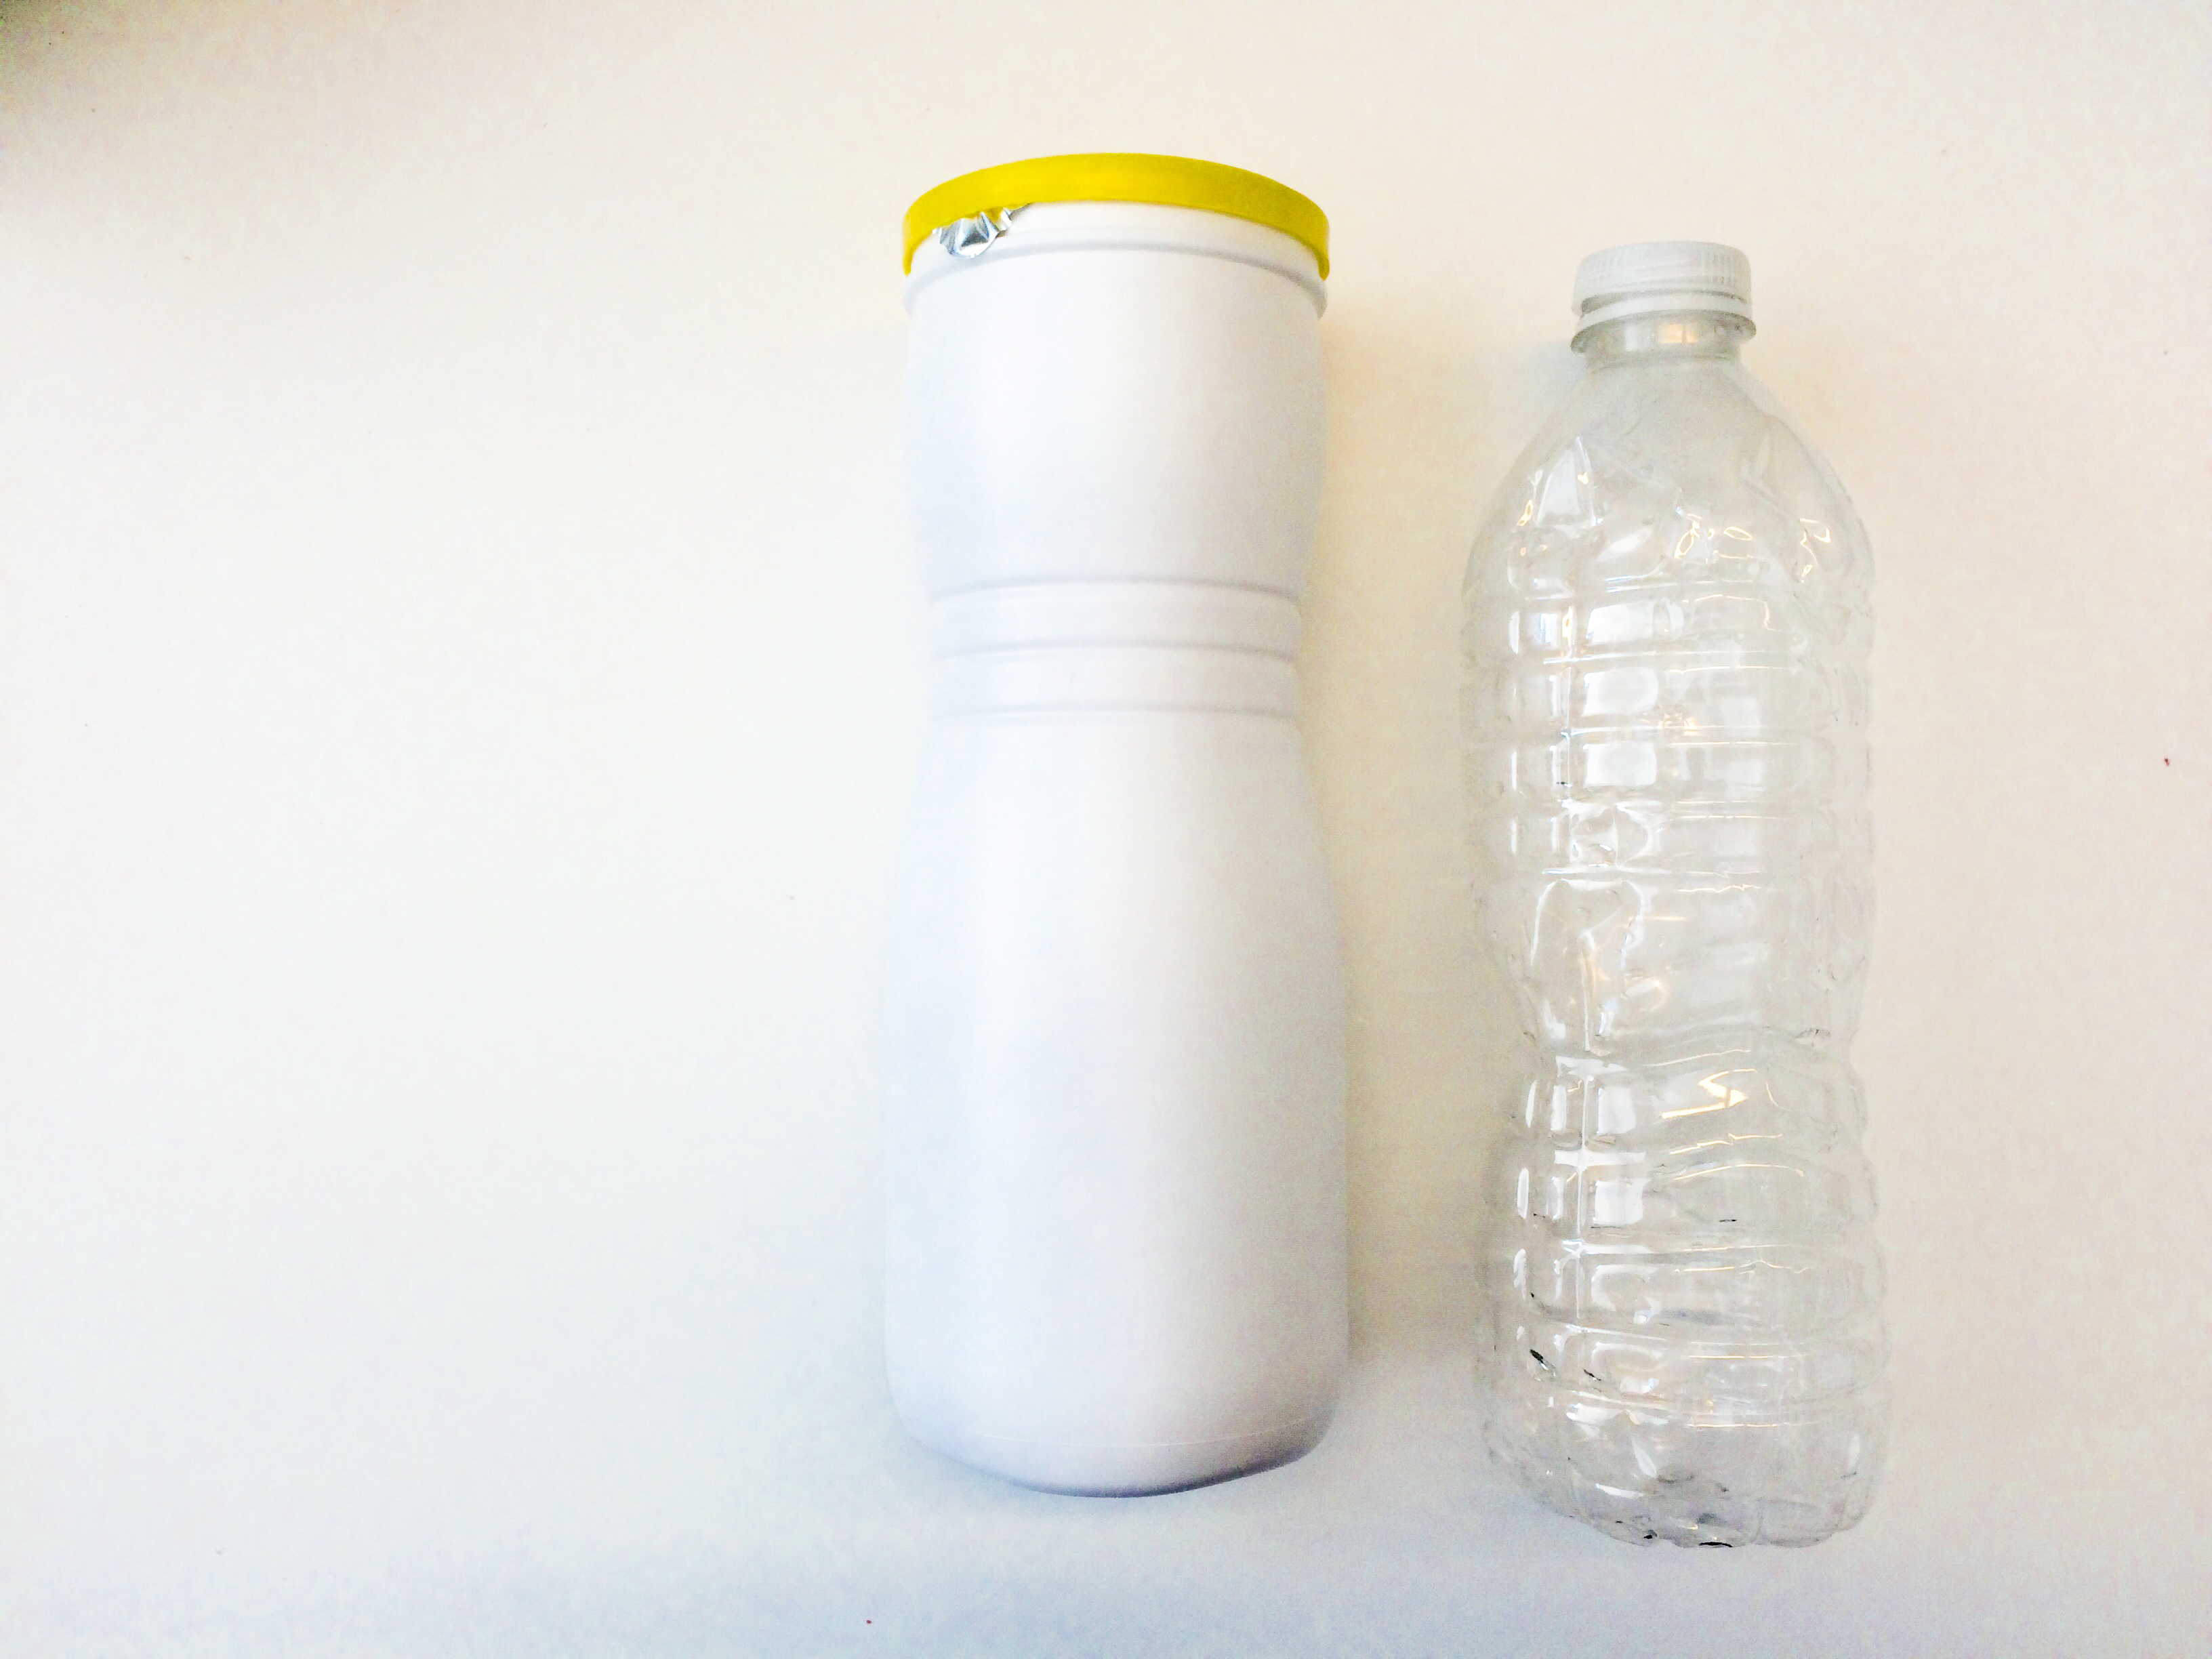 White cylindrical container and water bottle.